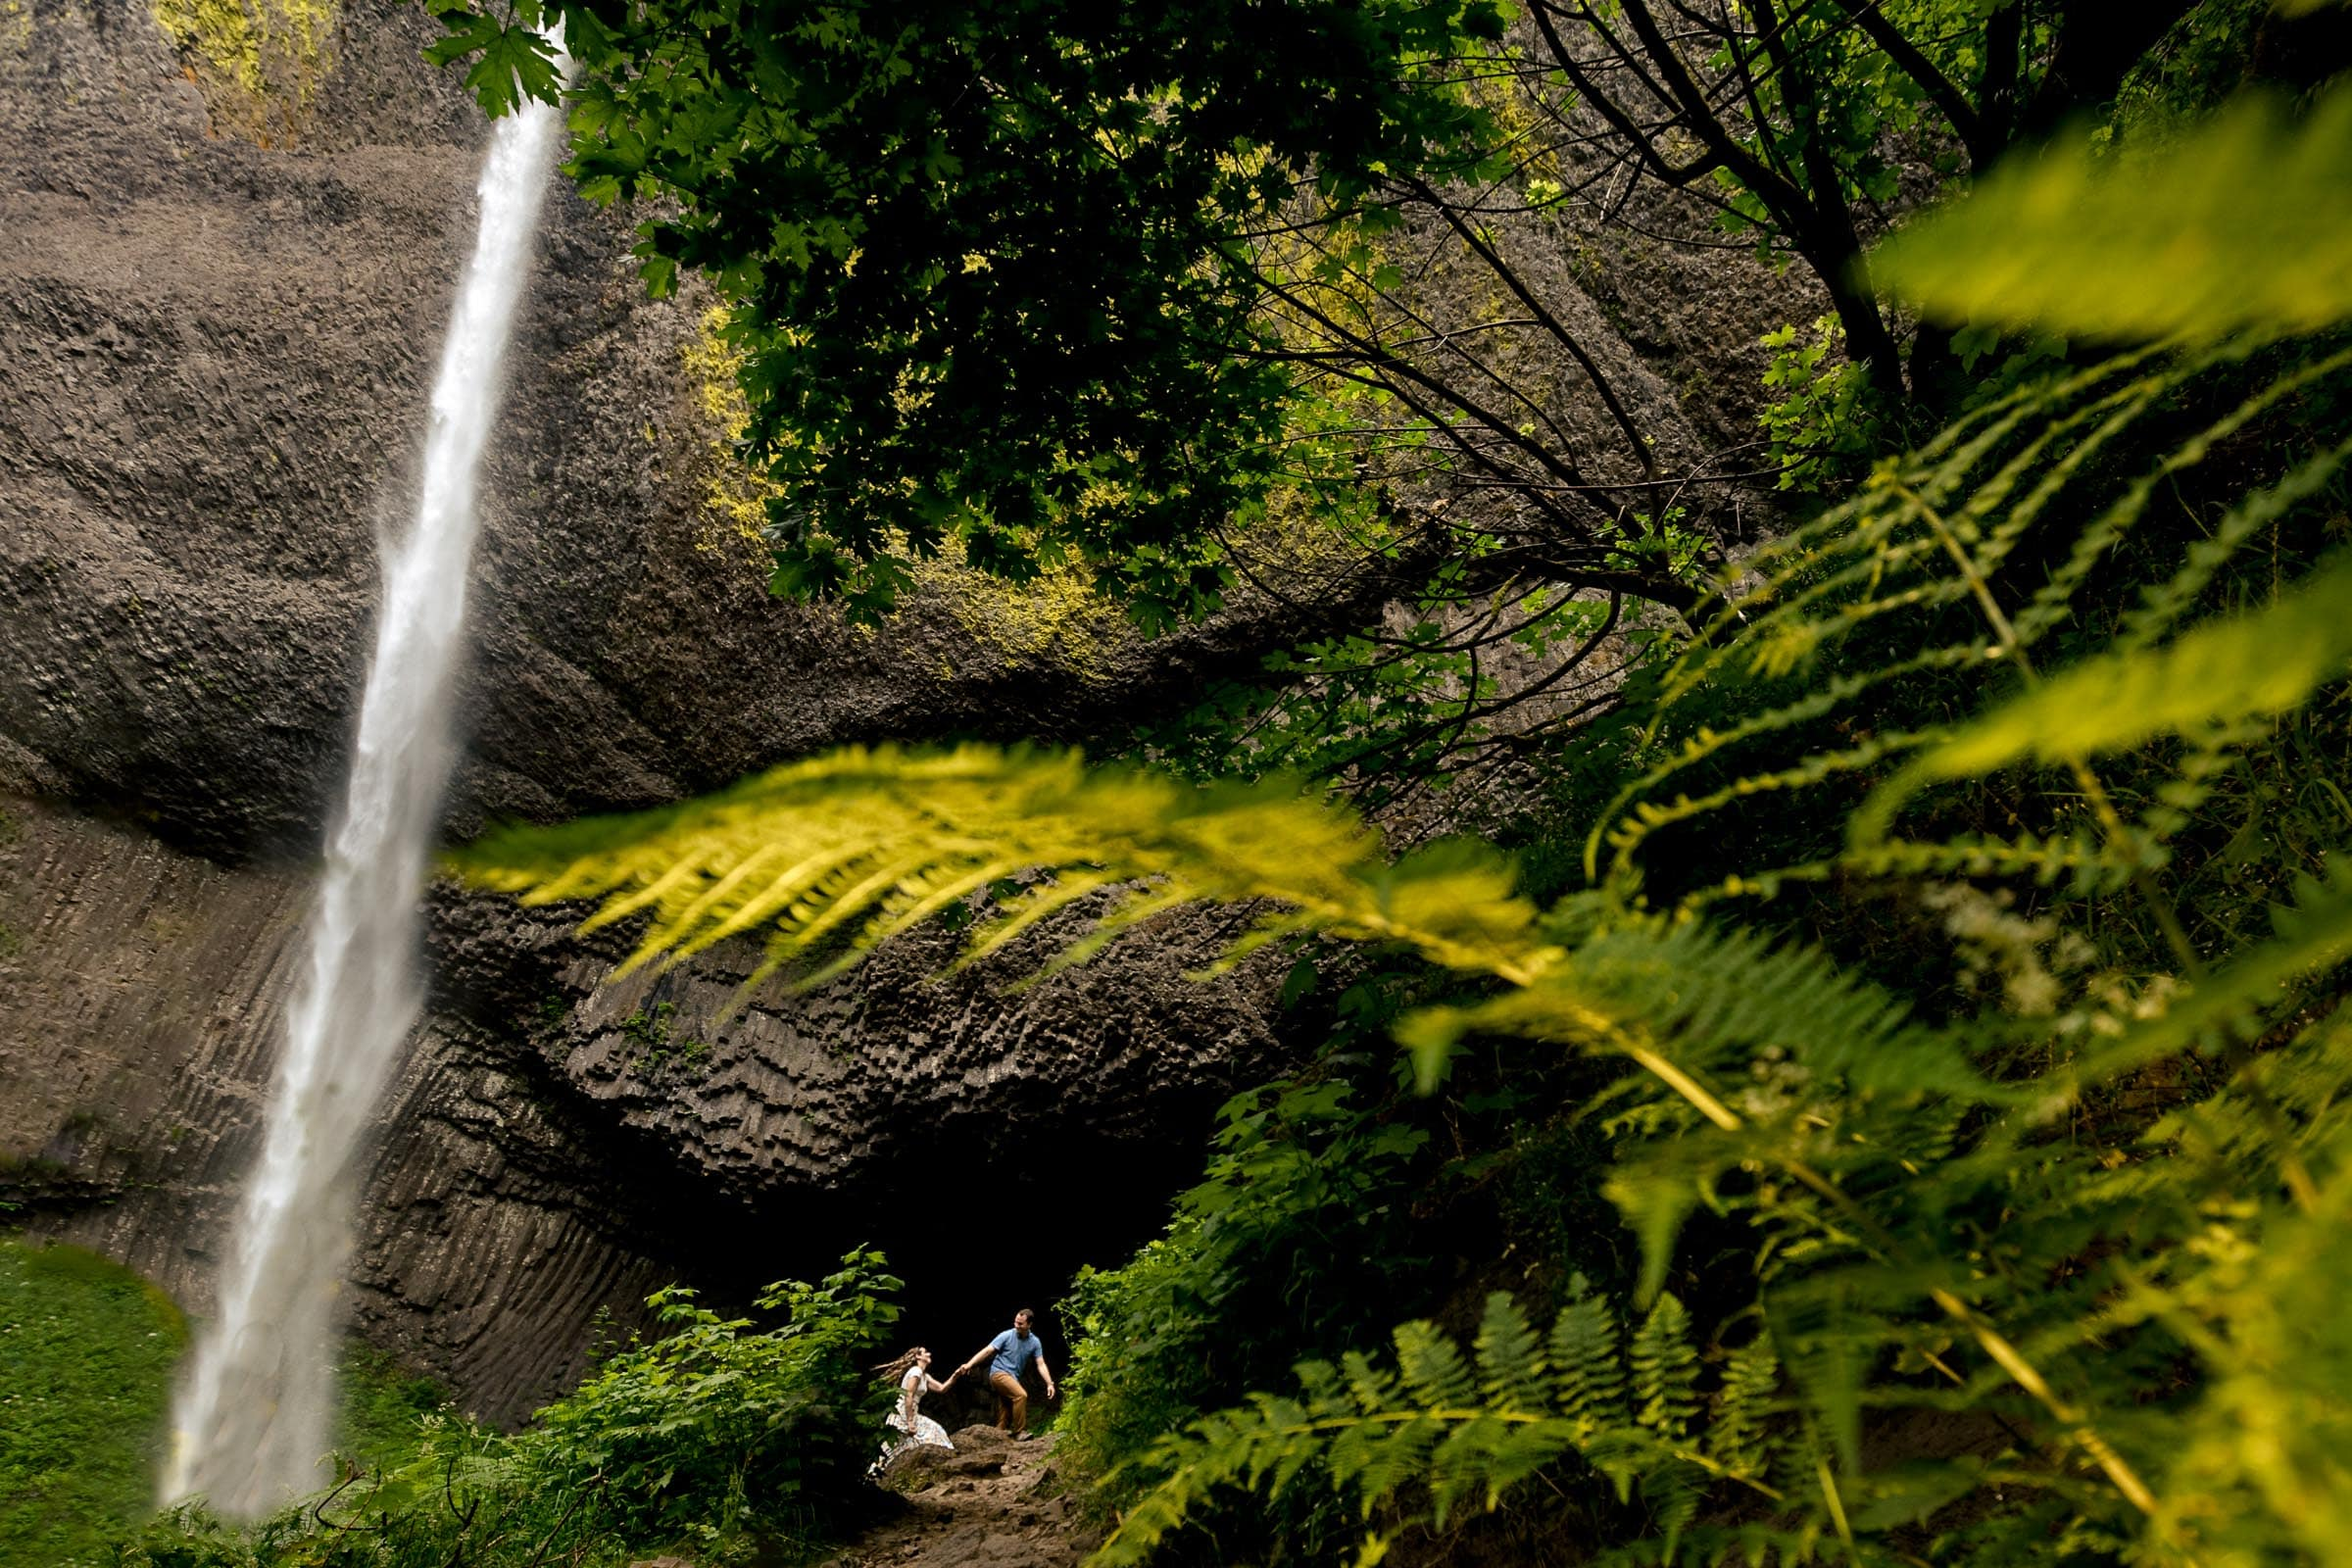 Couple walking through Latourell waterfalls after their proposal moment. Best Engagement Photography Locations in Portland. Latourell Falls Engagement Photos by Jos and Tree, portland wedding photographers.